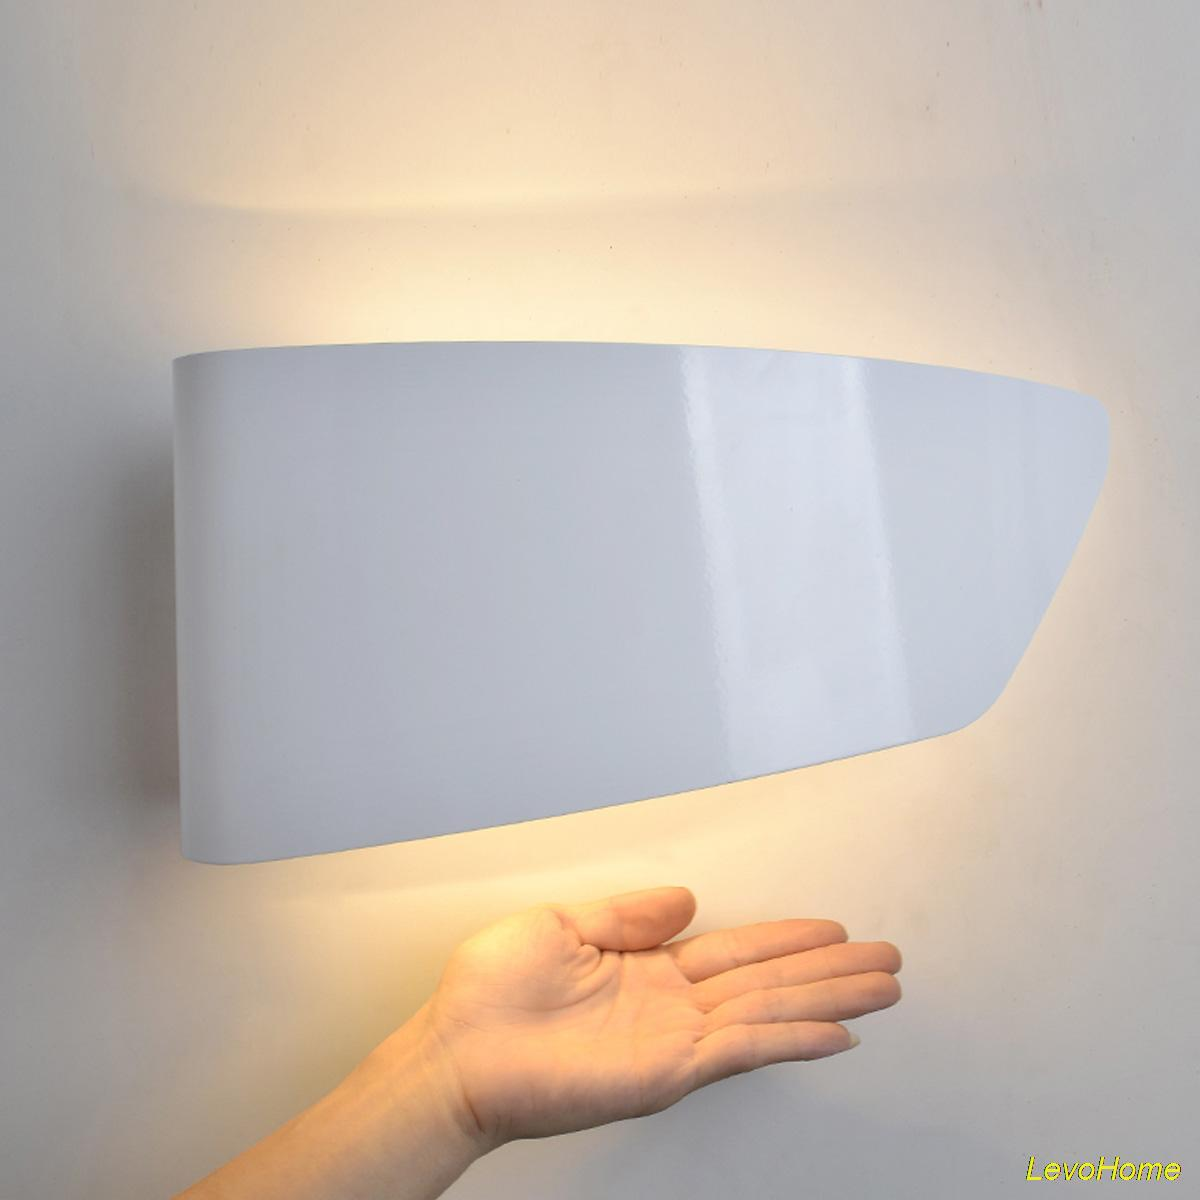 Modern wall lamp simple flag wall sconces white lamps luminarias modern wall lamp simple flag wall sconces white lamps luminarias fixtures lighting dining room bar lighting decor in wall lamps from lights lighting on arubaitofo Image collections